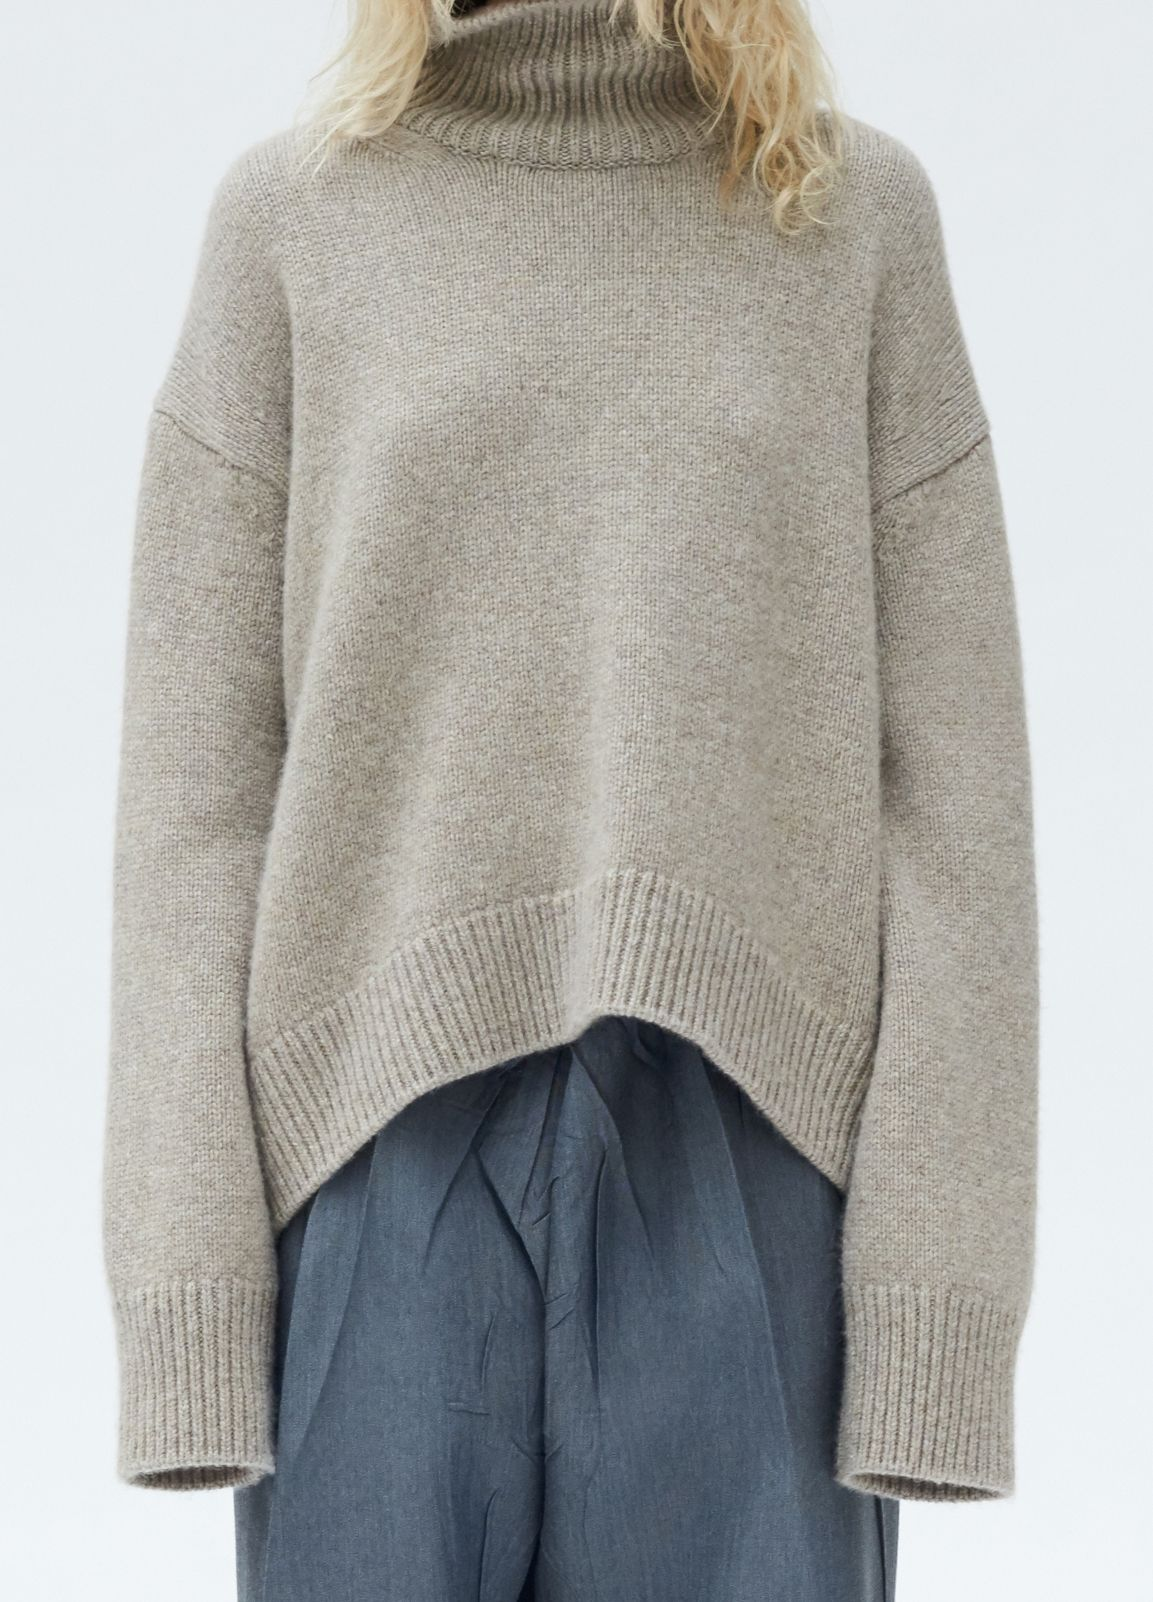 Asymmetrical Turtleneck Sweater in Lux Cashmere - Fall / Winter ...